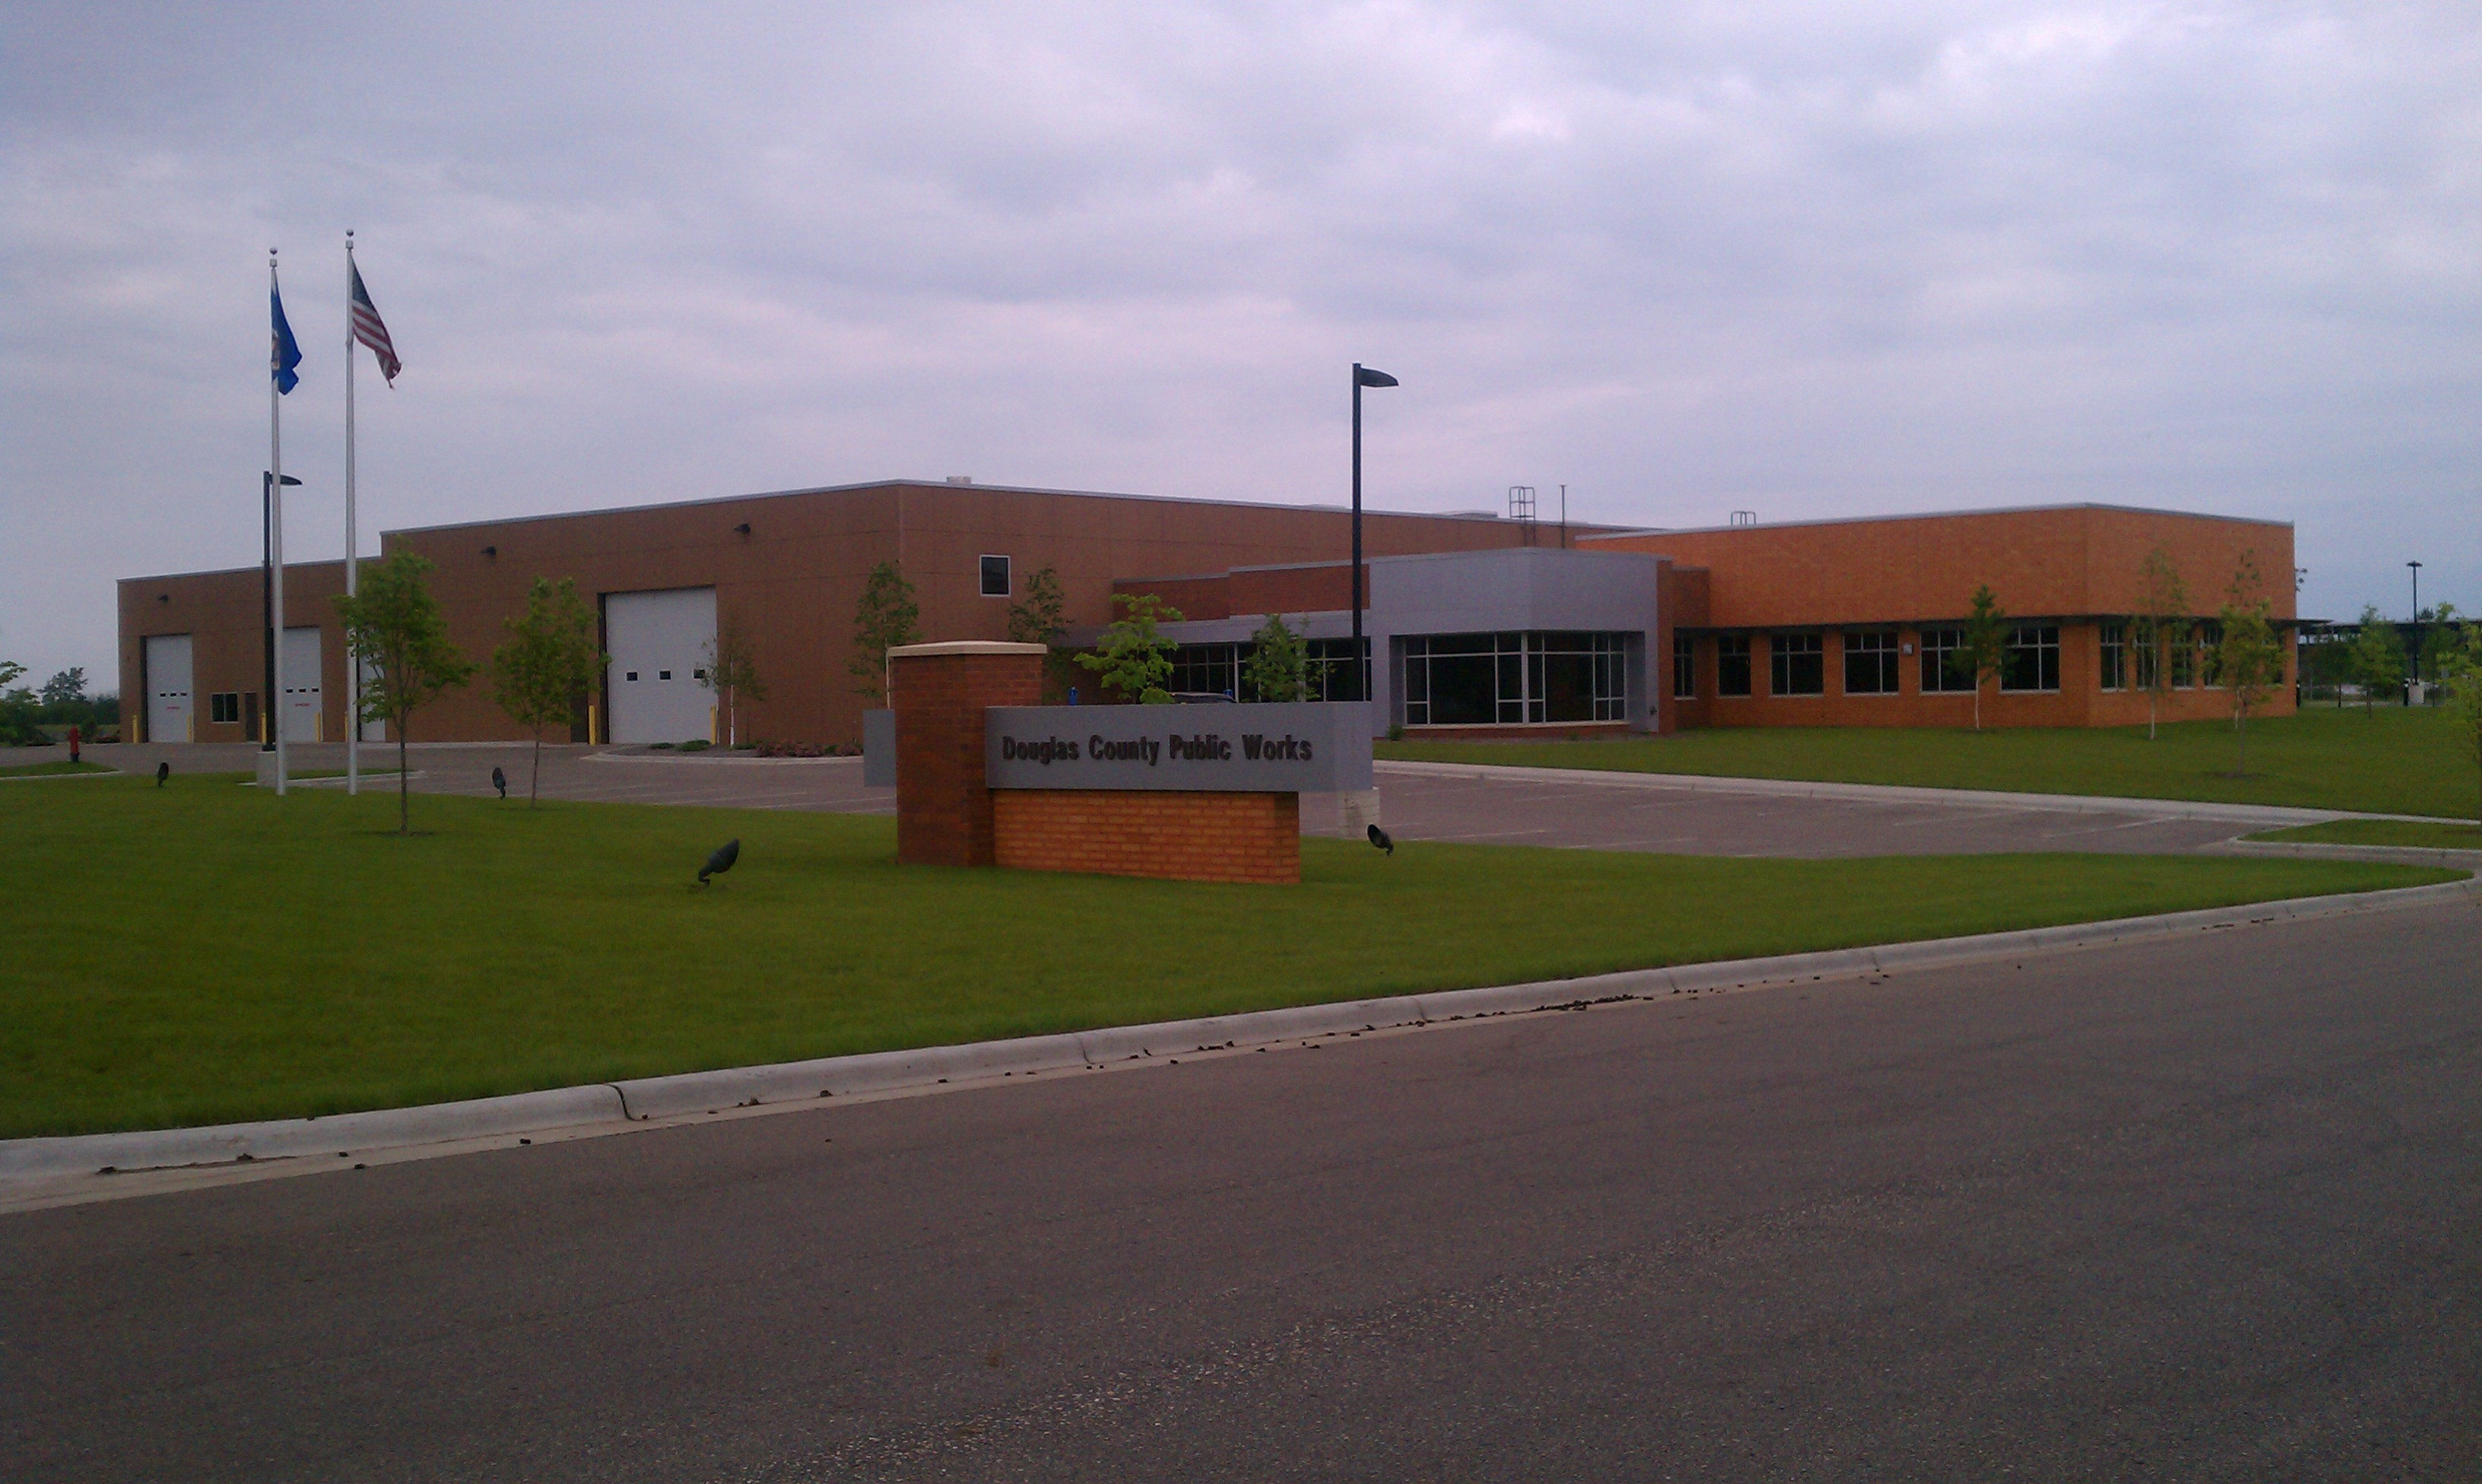 Douglas County Public Works Building